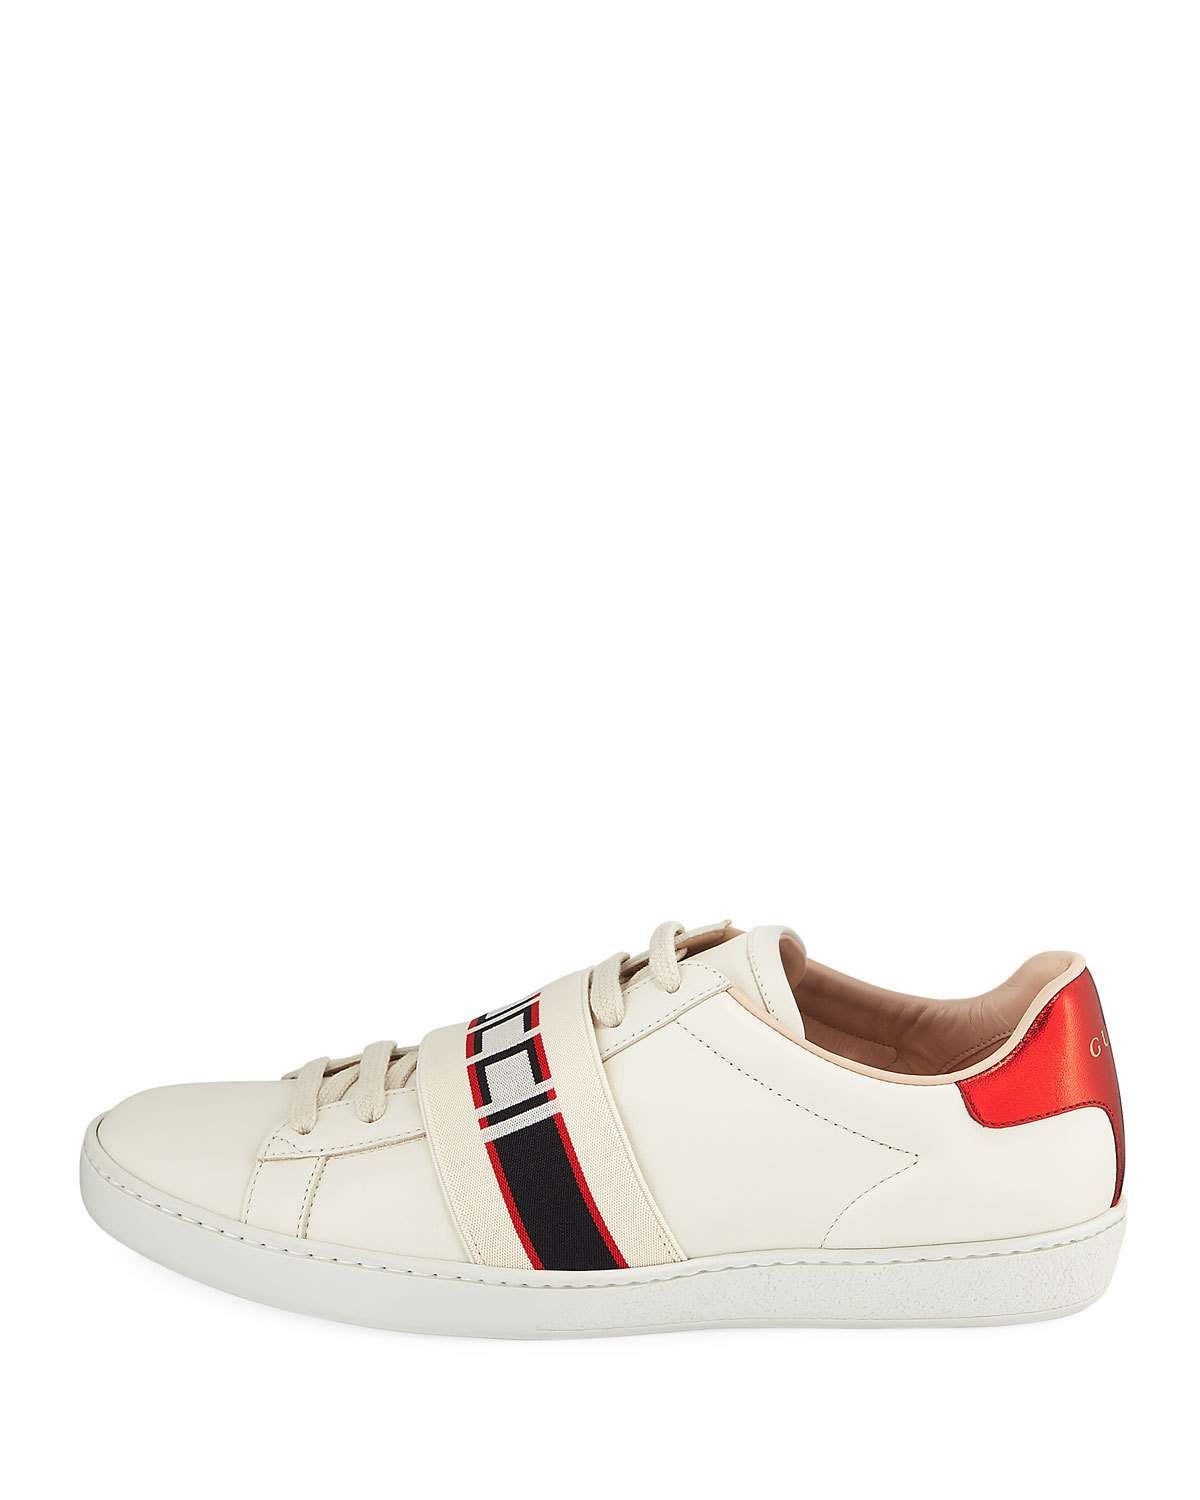 85acb8b9187 Gucci Ace Logo-Band Leather Low-Top Sneaker